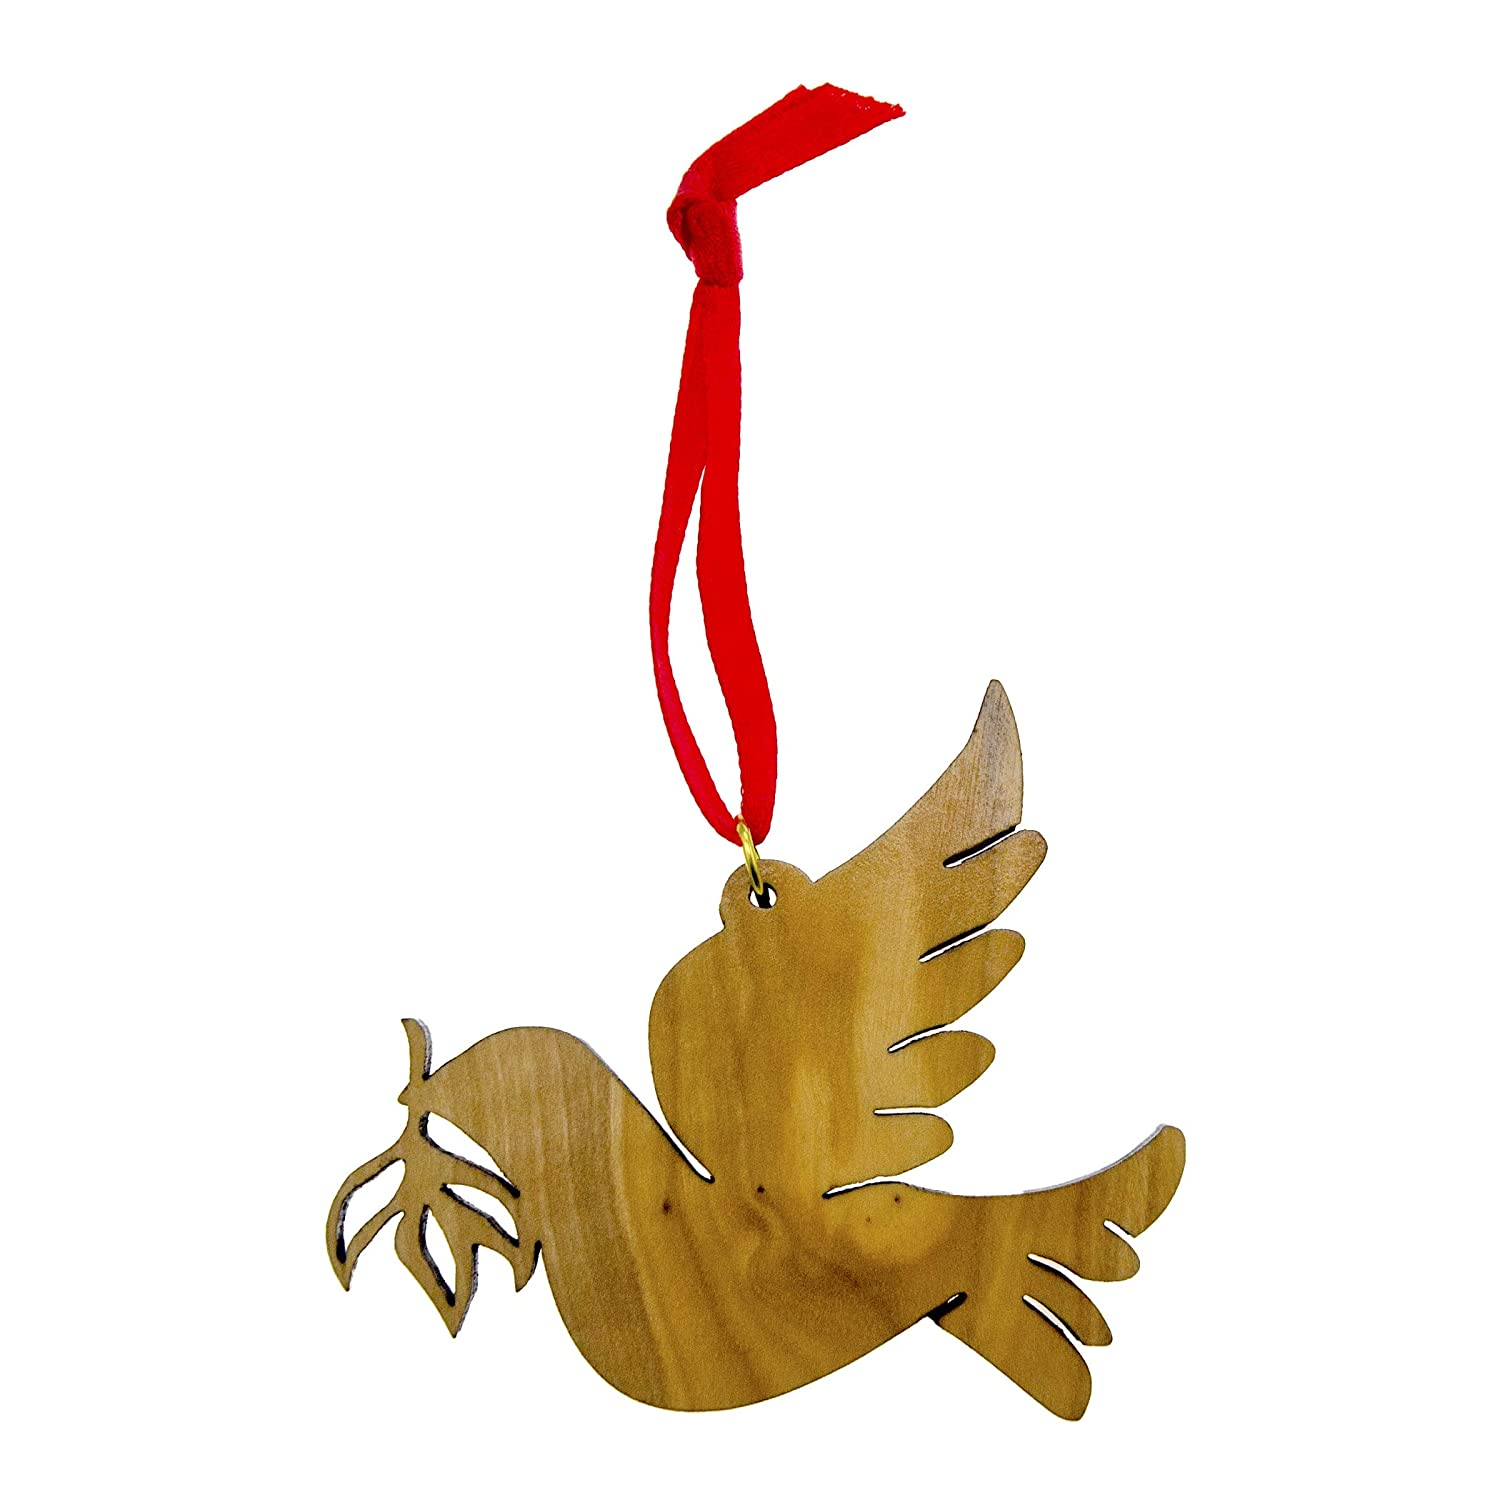 From The Earth - Olive Wood Peace Dove with Olive Branch Christmas Ornament - Fair Trade & Handmade